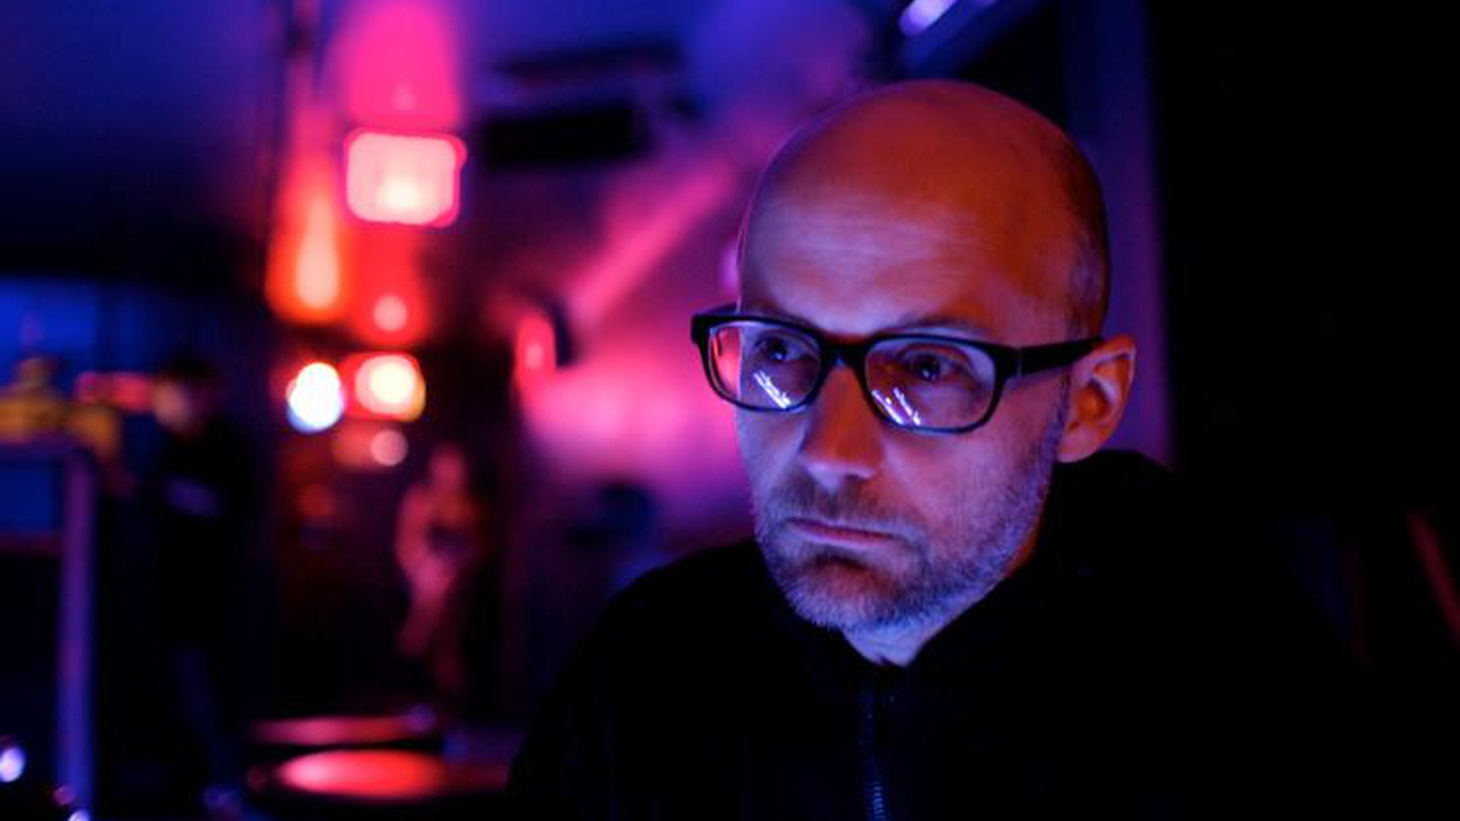 In the 10 o'clock hour, KCRW favorite Moby joins us as guest DJ on the eve of his photographic exhibit culled from his album Innocents at Project Gallery.